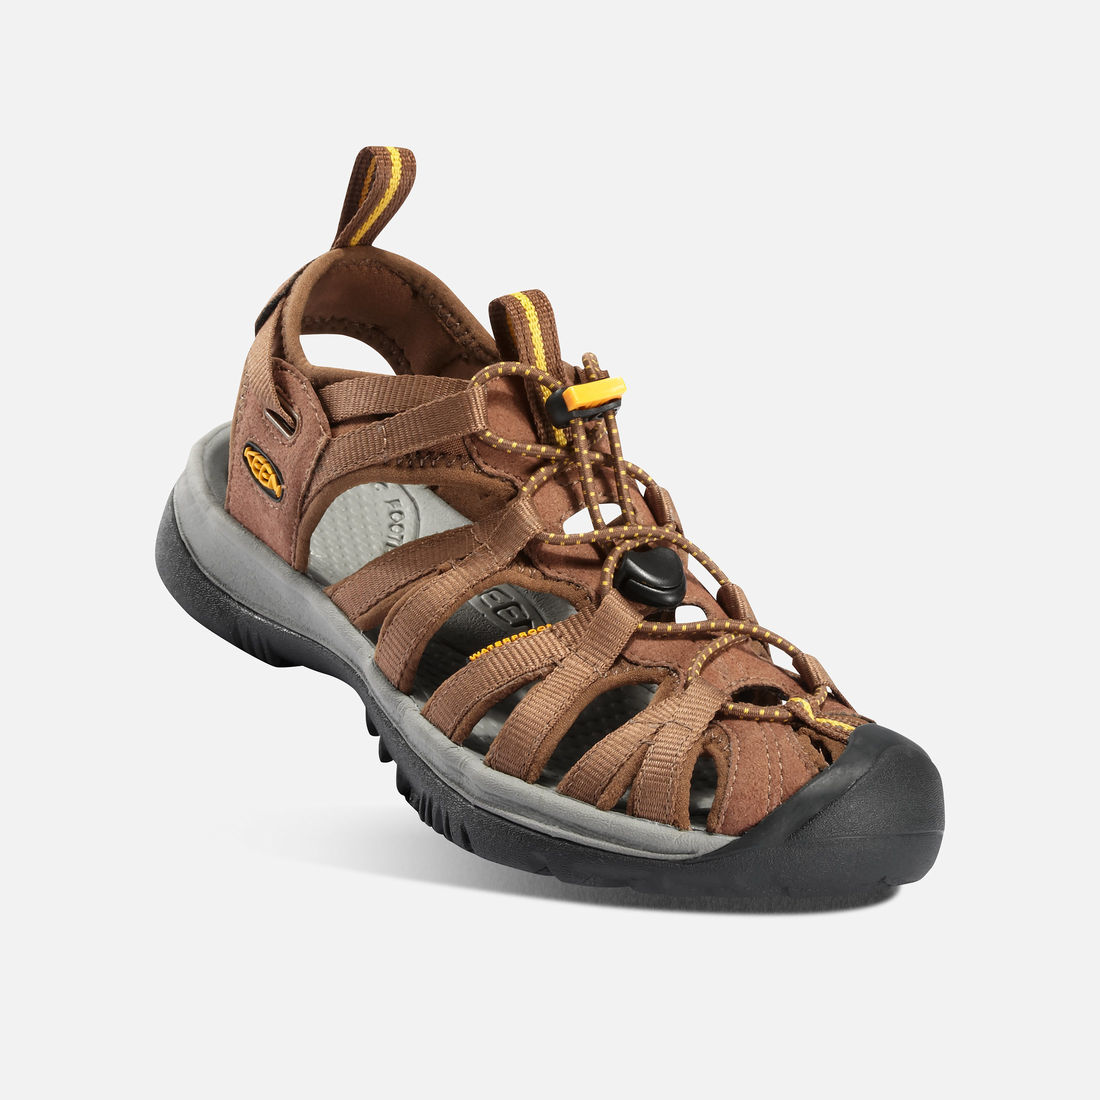 5b5546050d18 KEEN Whisper Sandal - Coffee Brown - Rudolph Shoes.com